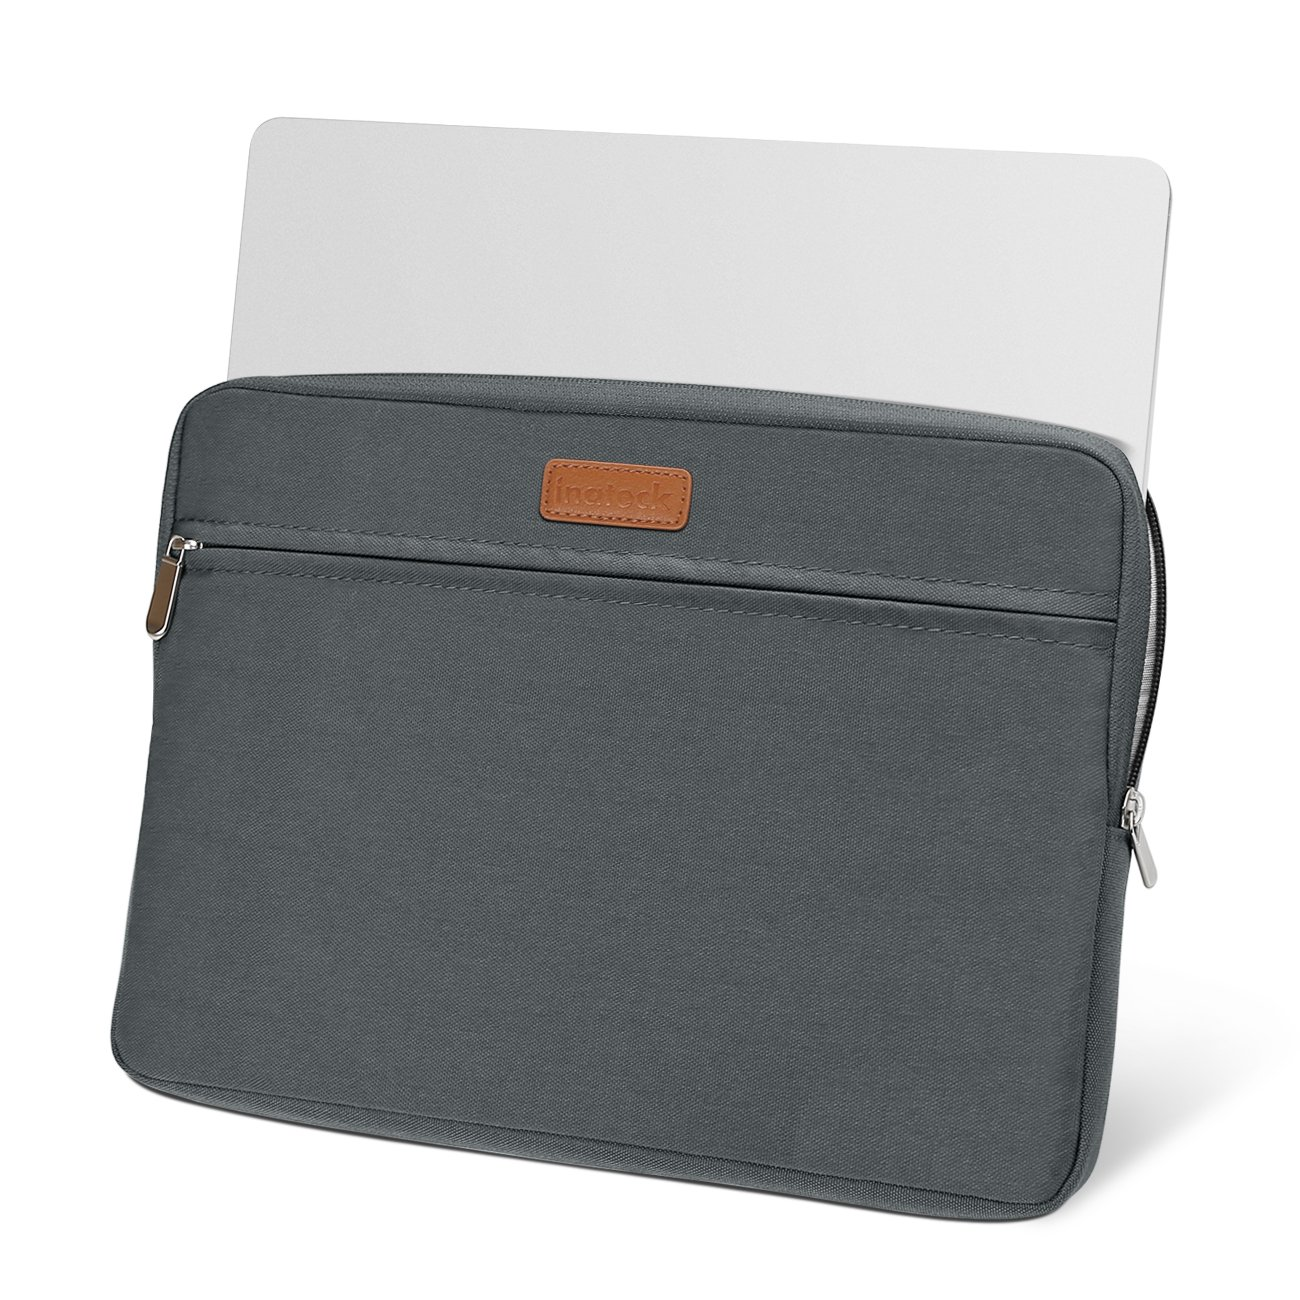 Gray LC1300S Inateck 13-13.3 Inch Sleeve Compatible MacBook Air//Pro Retina Water Repellent Sleeve Carrying Case Bag